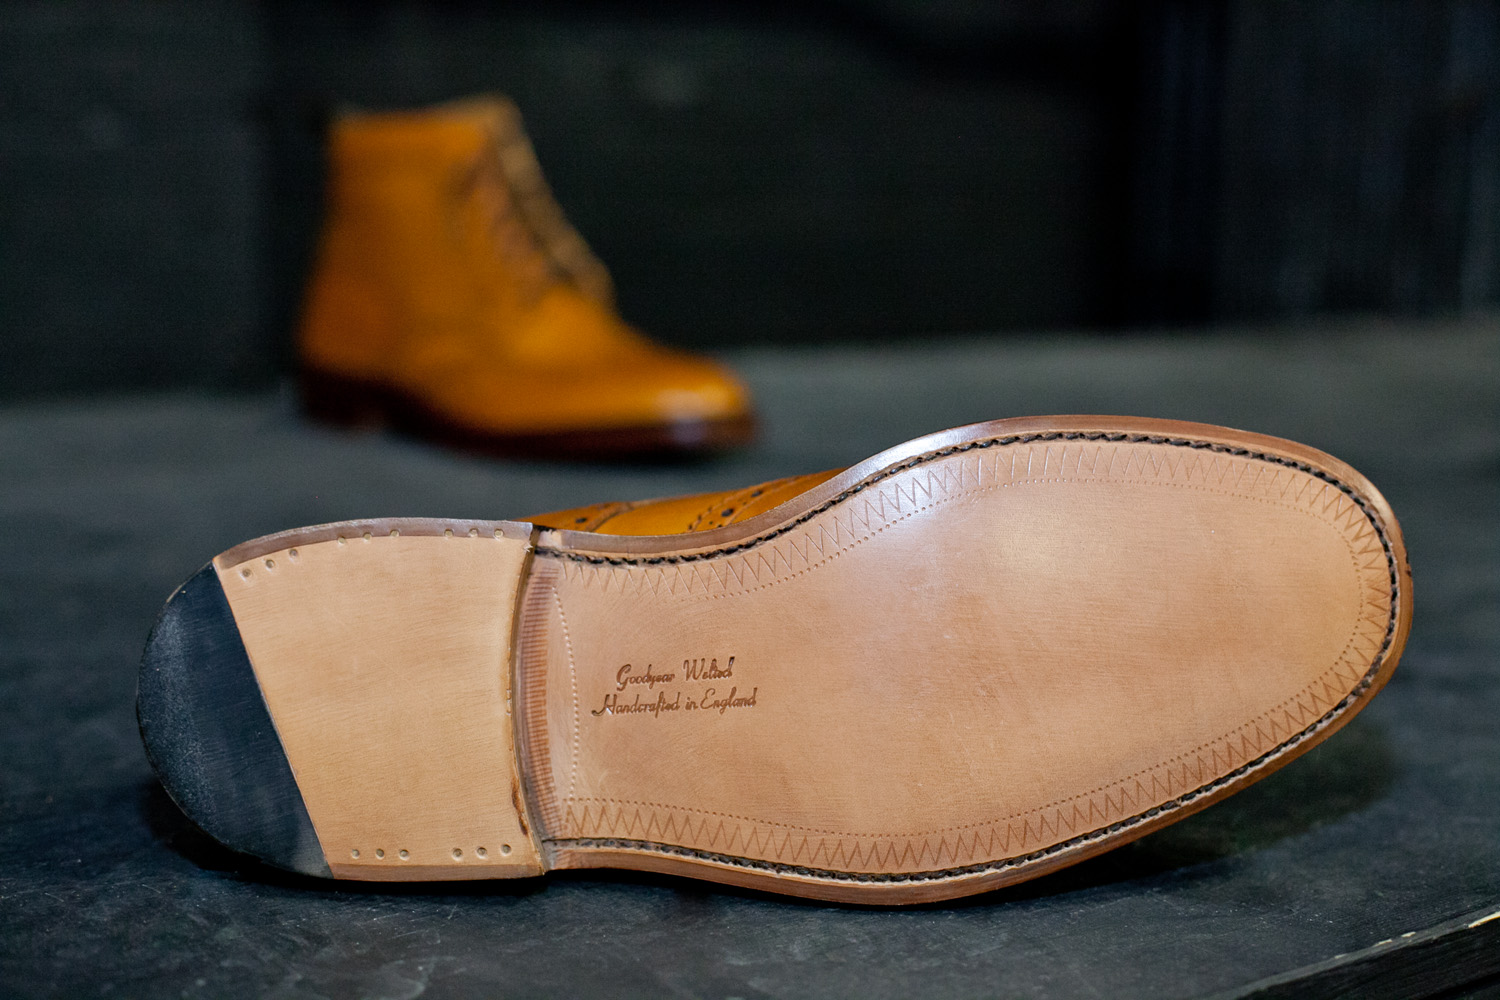 The Goodyear welt is the oldest and most labour intensive method of shoemaking in the world